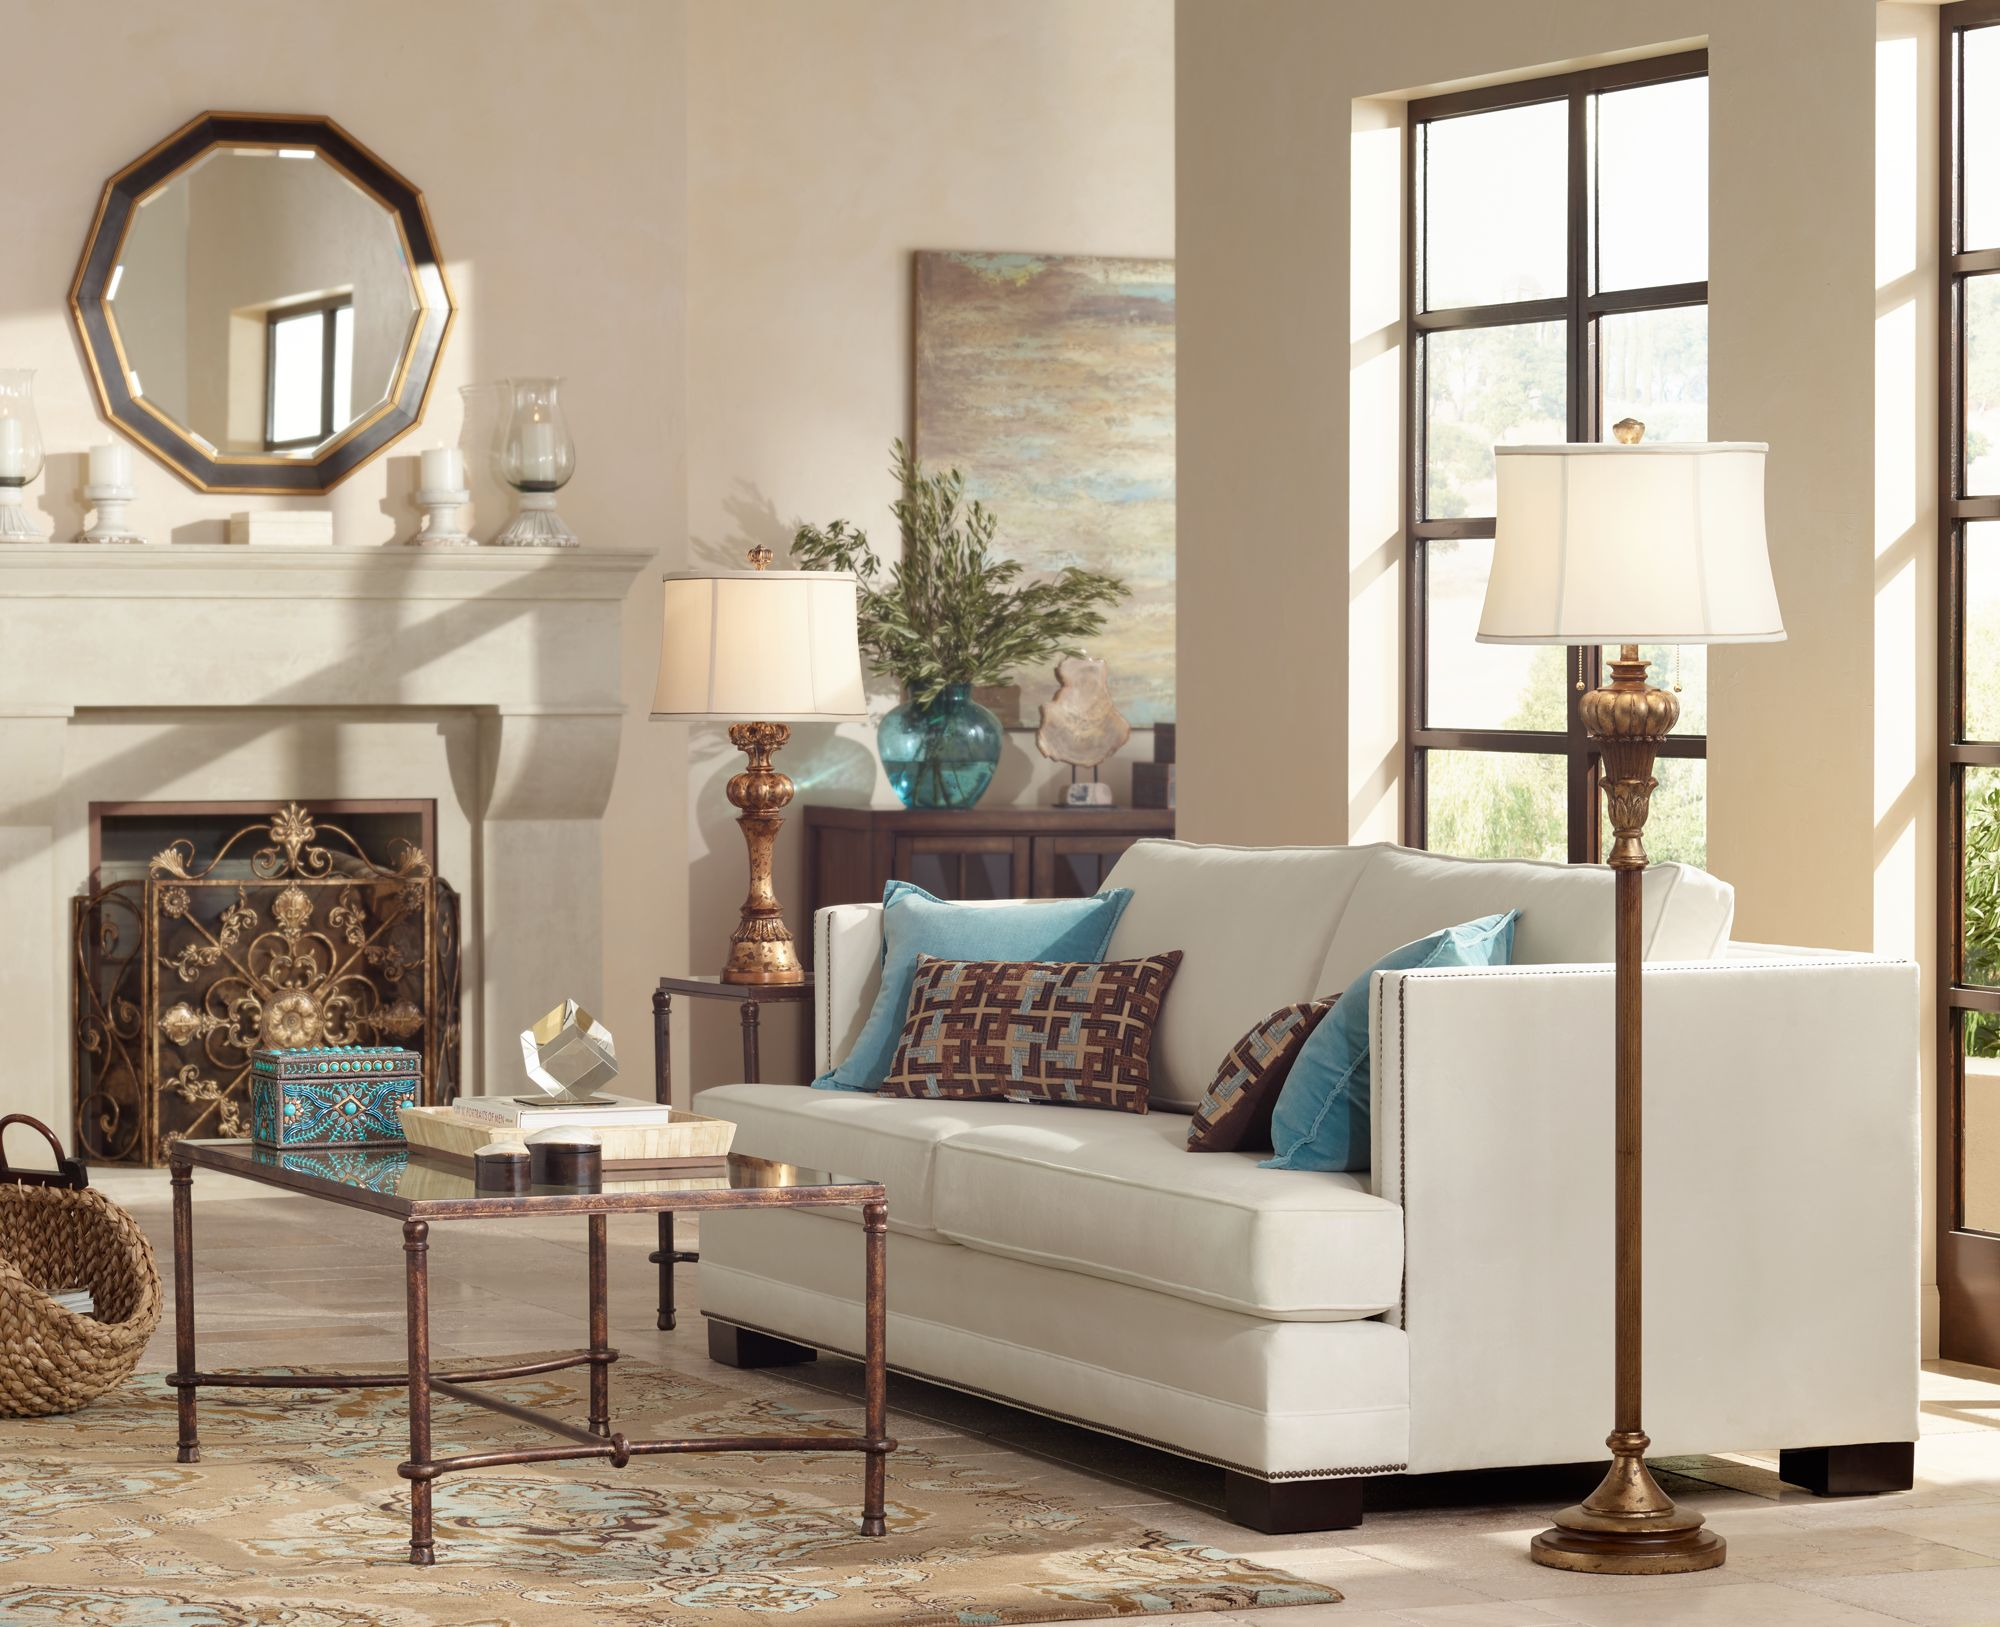 Trend Idea: Stylish Gold Finishes Lend A Living Room An Elegant Glow.